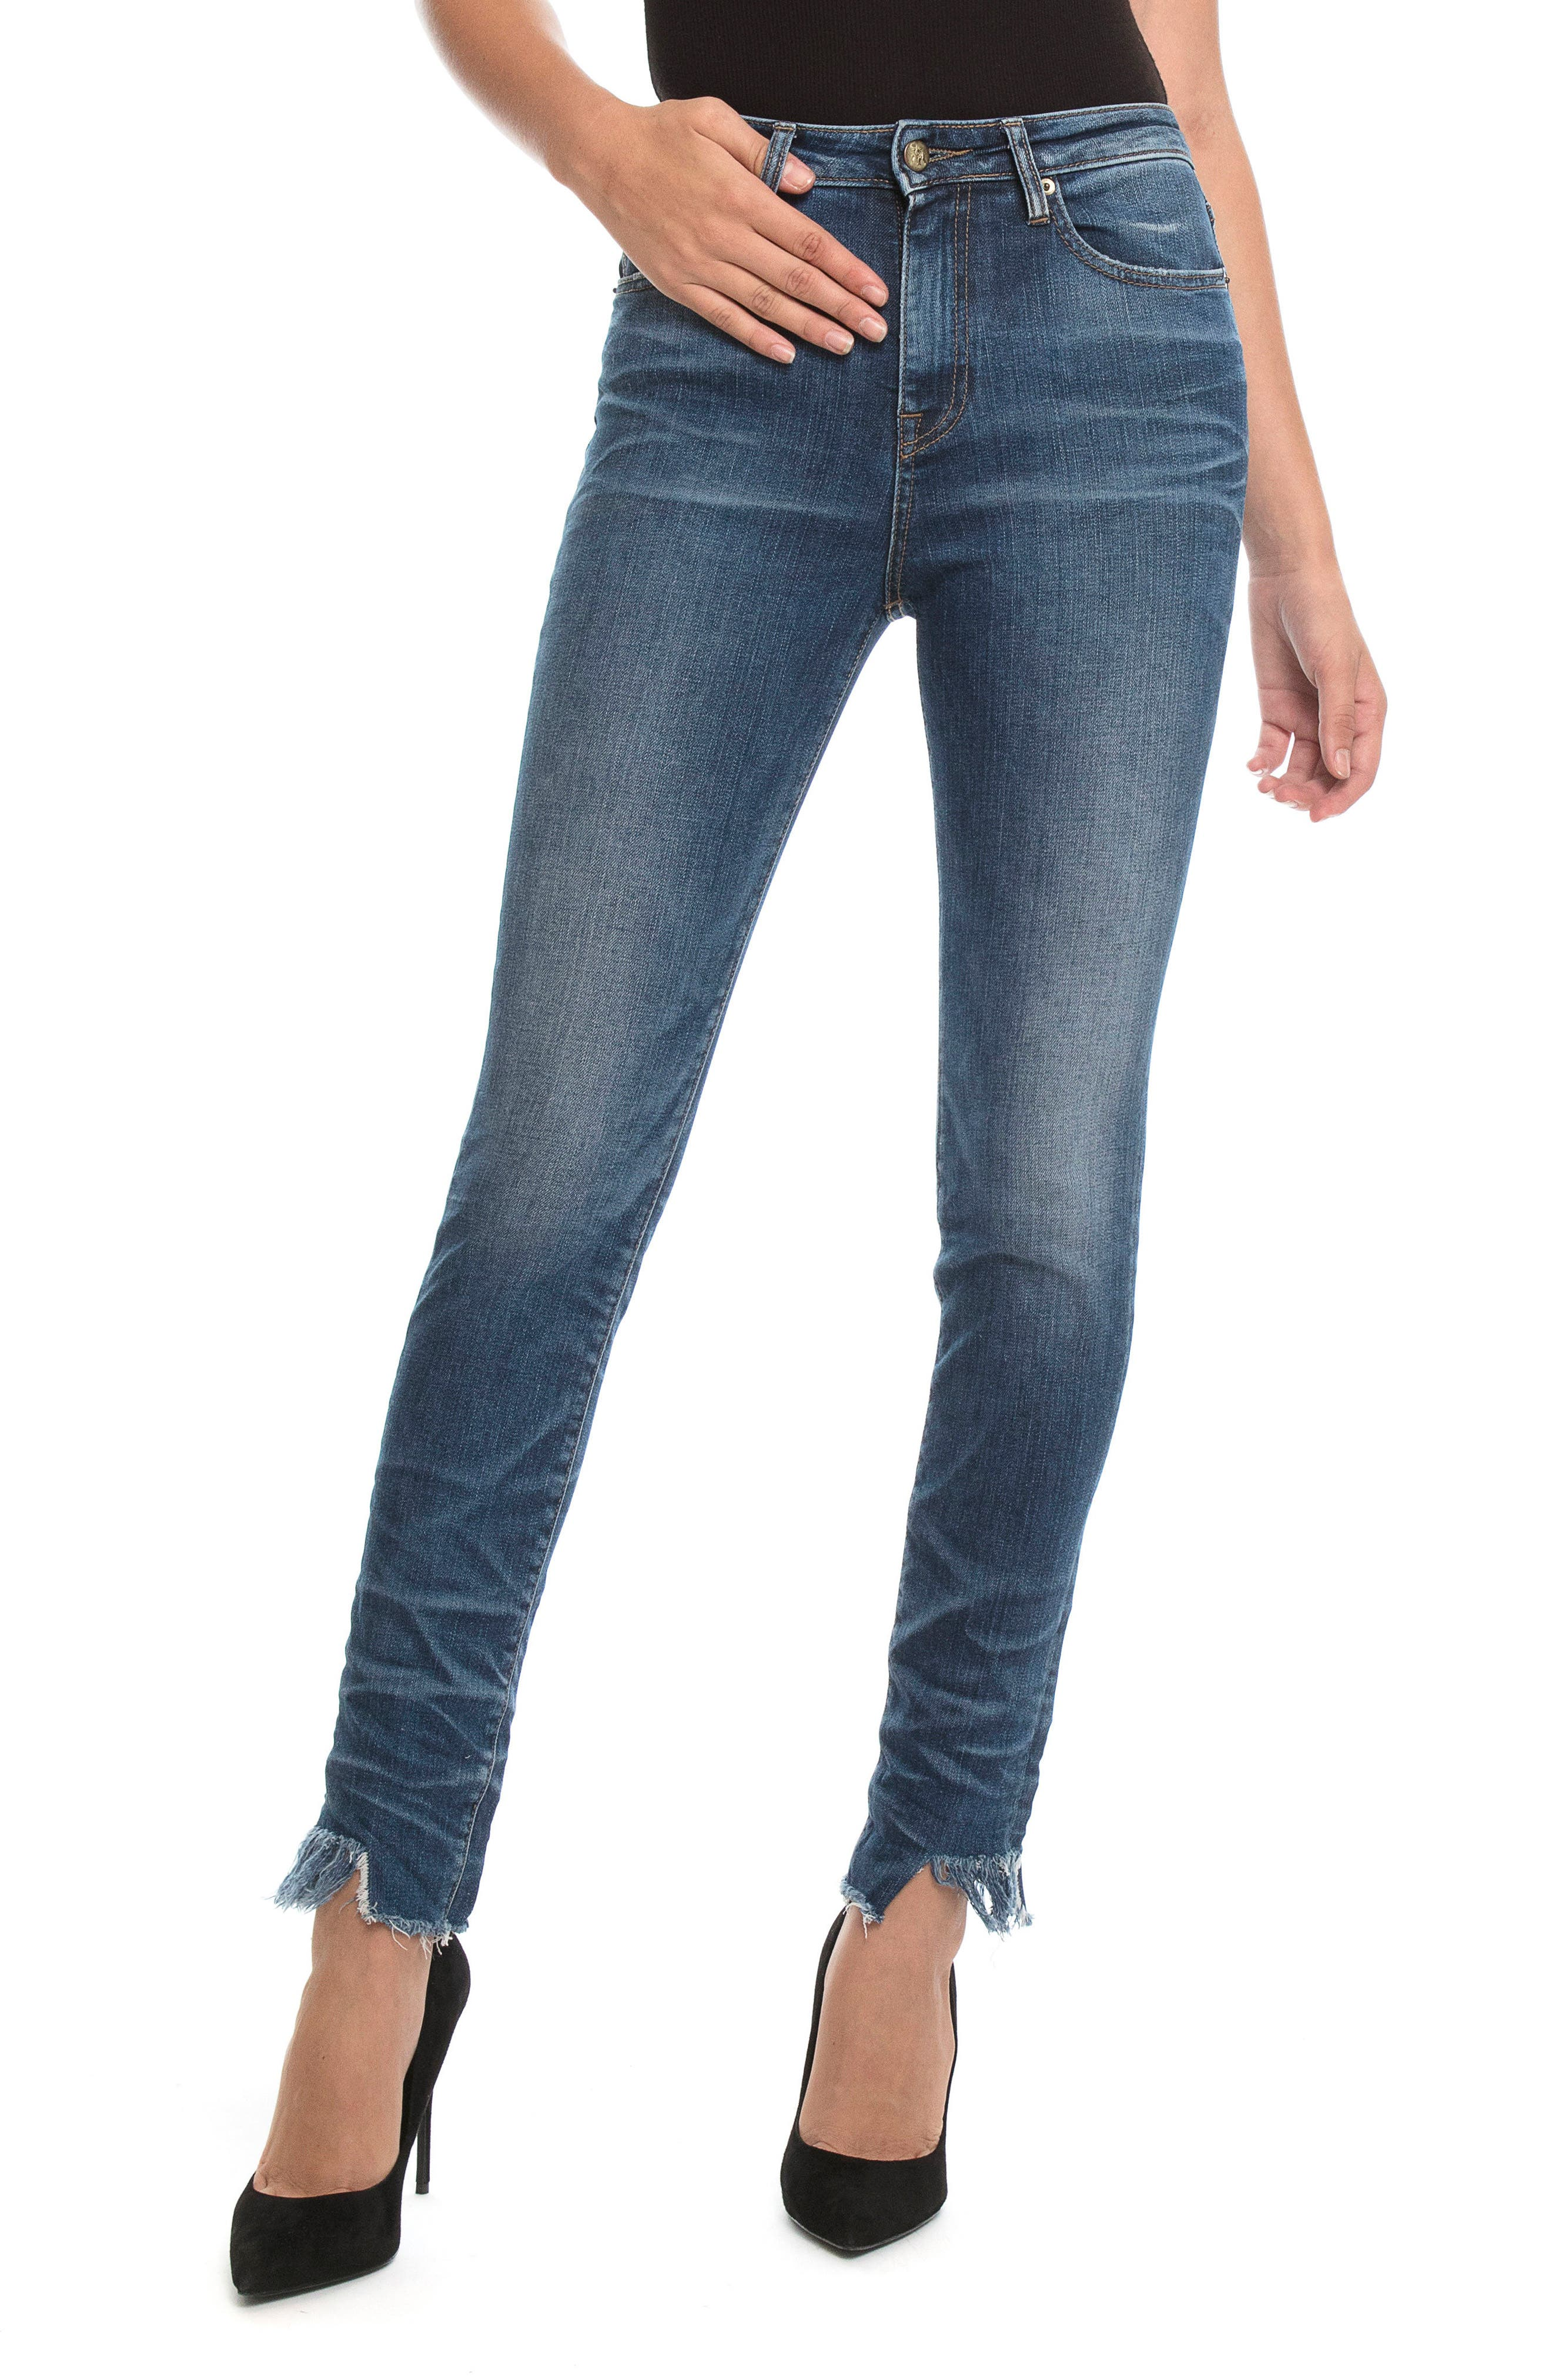 Alternate Image 1 Selected - PRPS Camaro Ankle Skinny Jeans (Vintage)